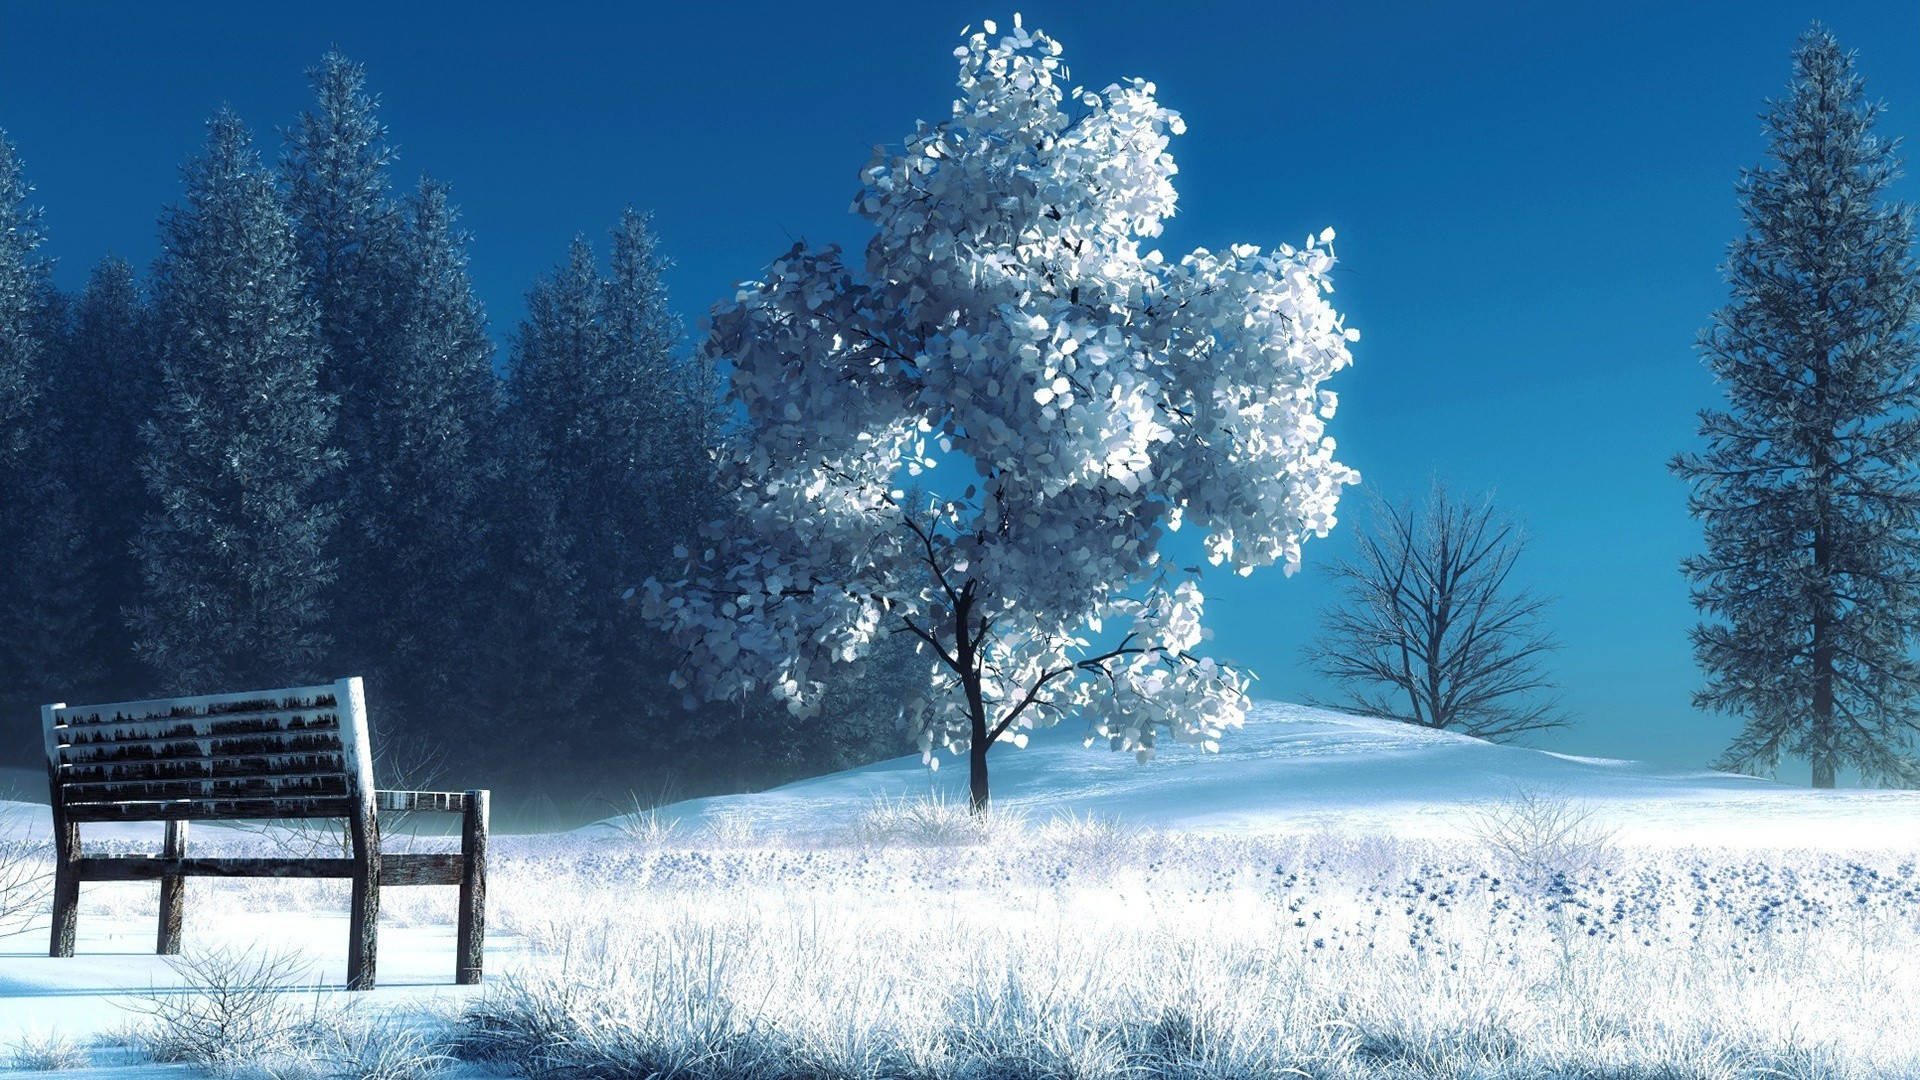 Download Wallpaper 1920x1080 Winter Landscape Nature Snow Bench Trees Full Hd 1080p Hd Background